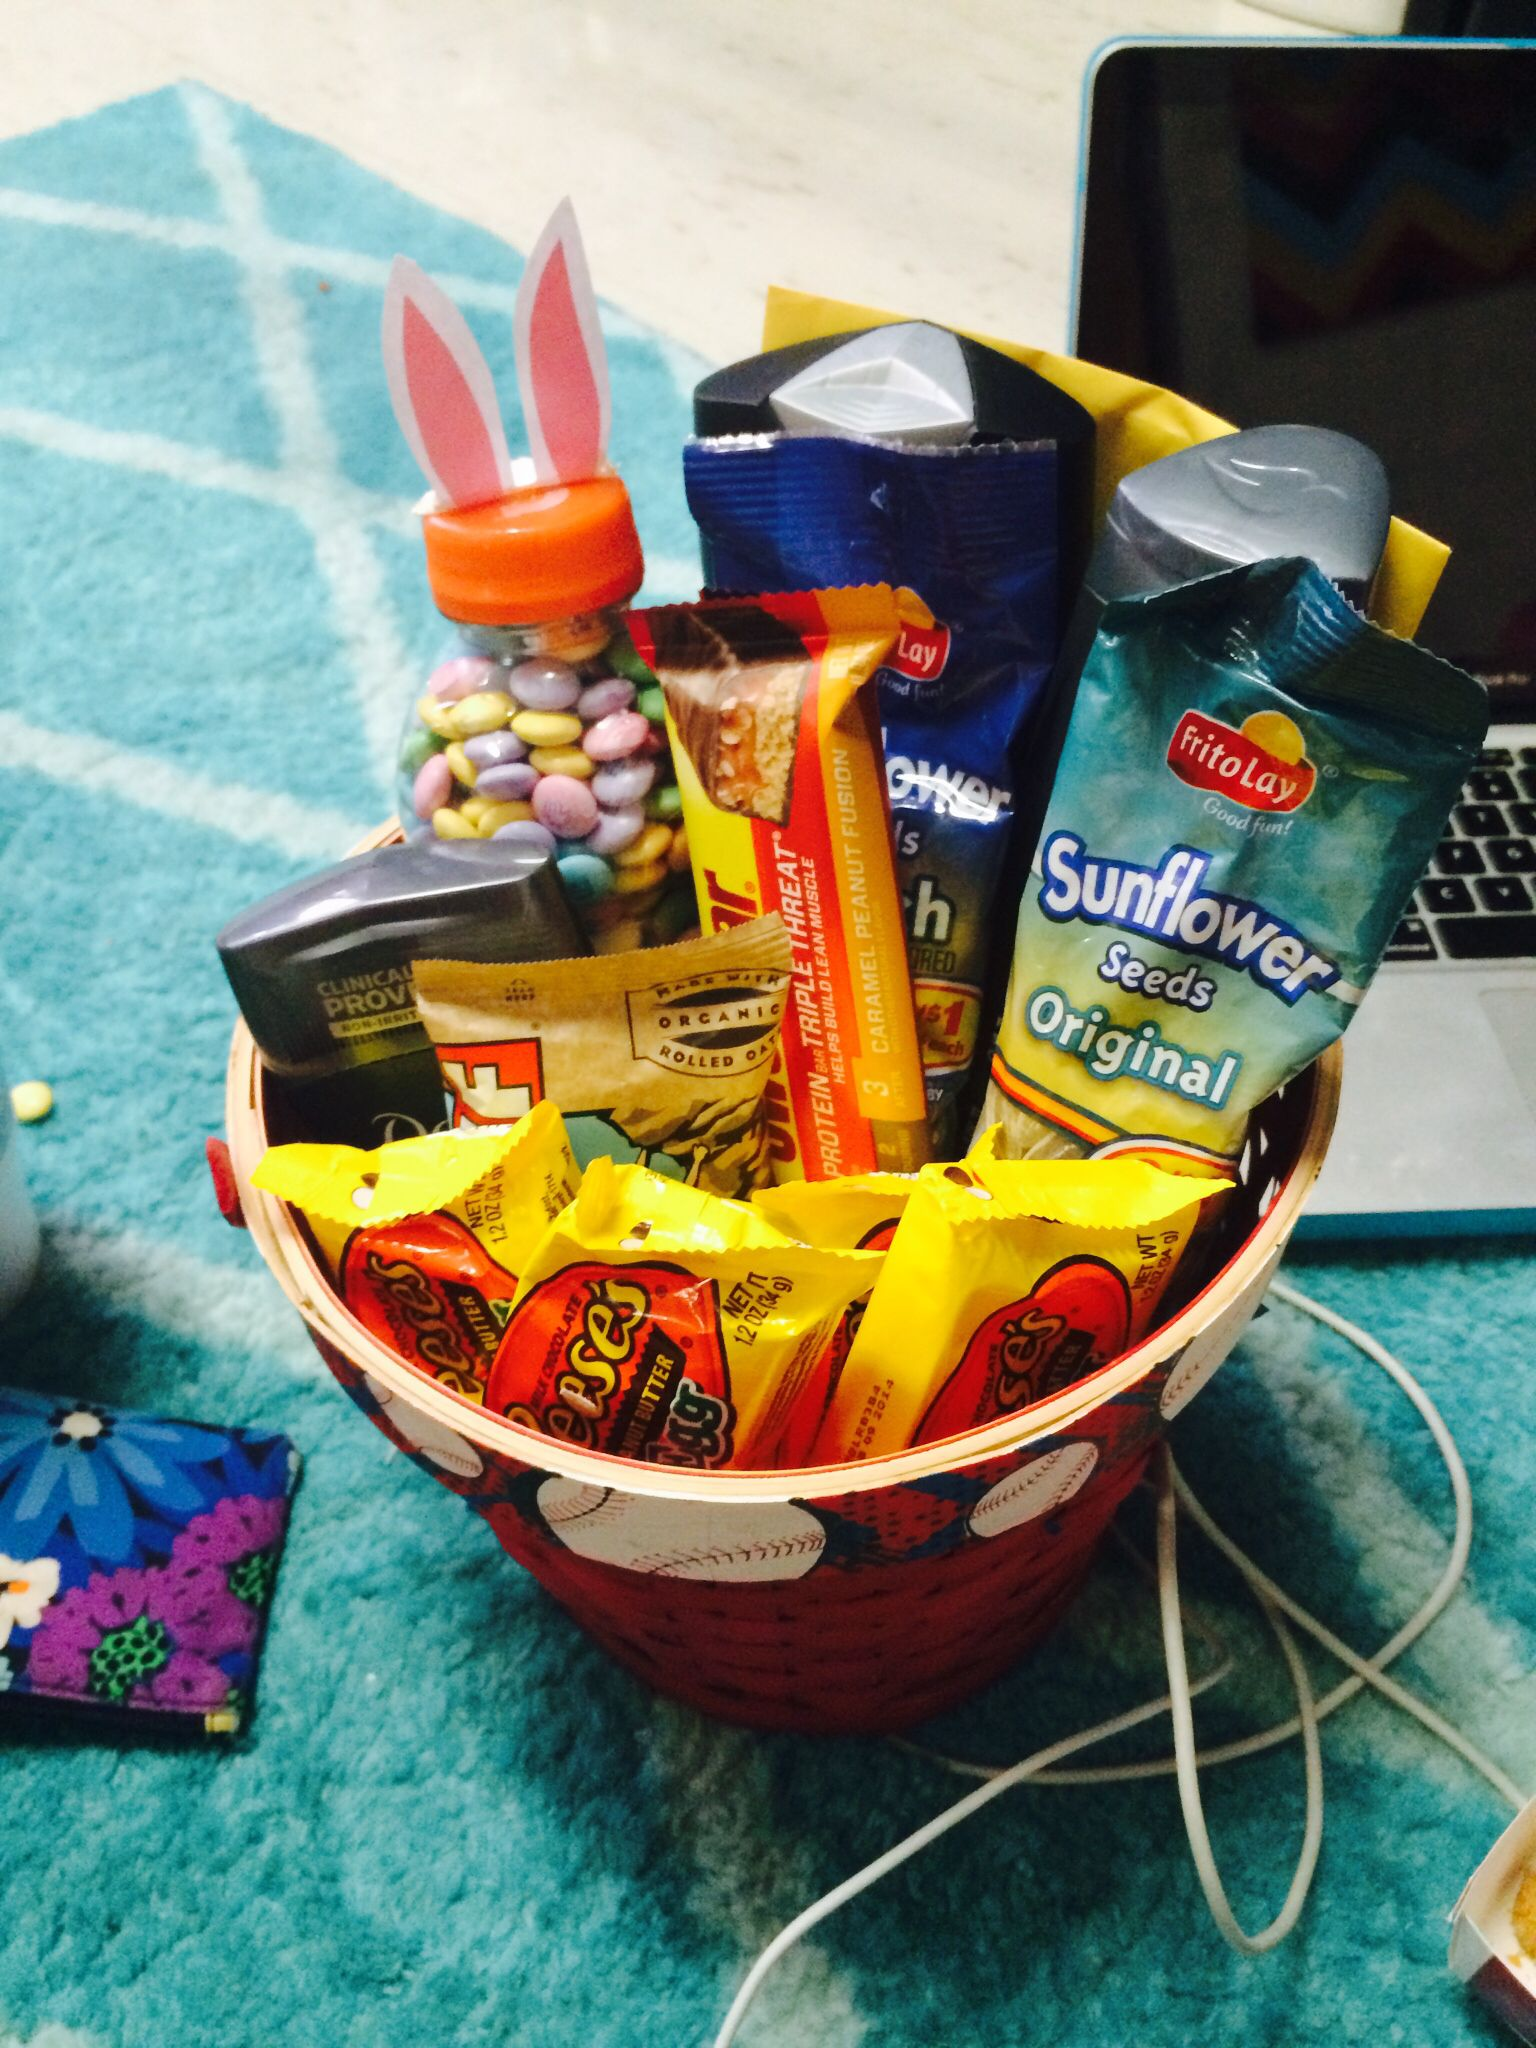 Made this easter basket for my boyfriend easterforboyfriend diy made this easter basket for my boyfriend easterforboyfriend diy negle Choice Image